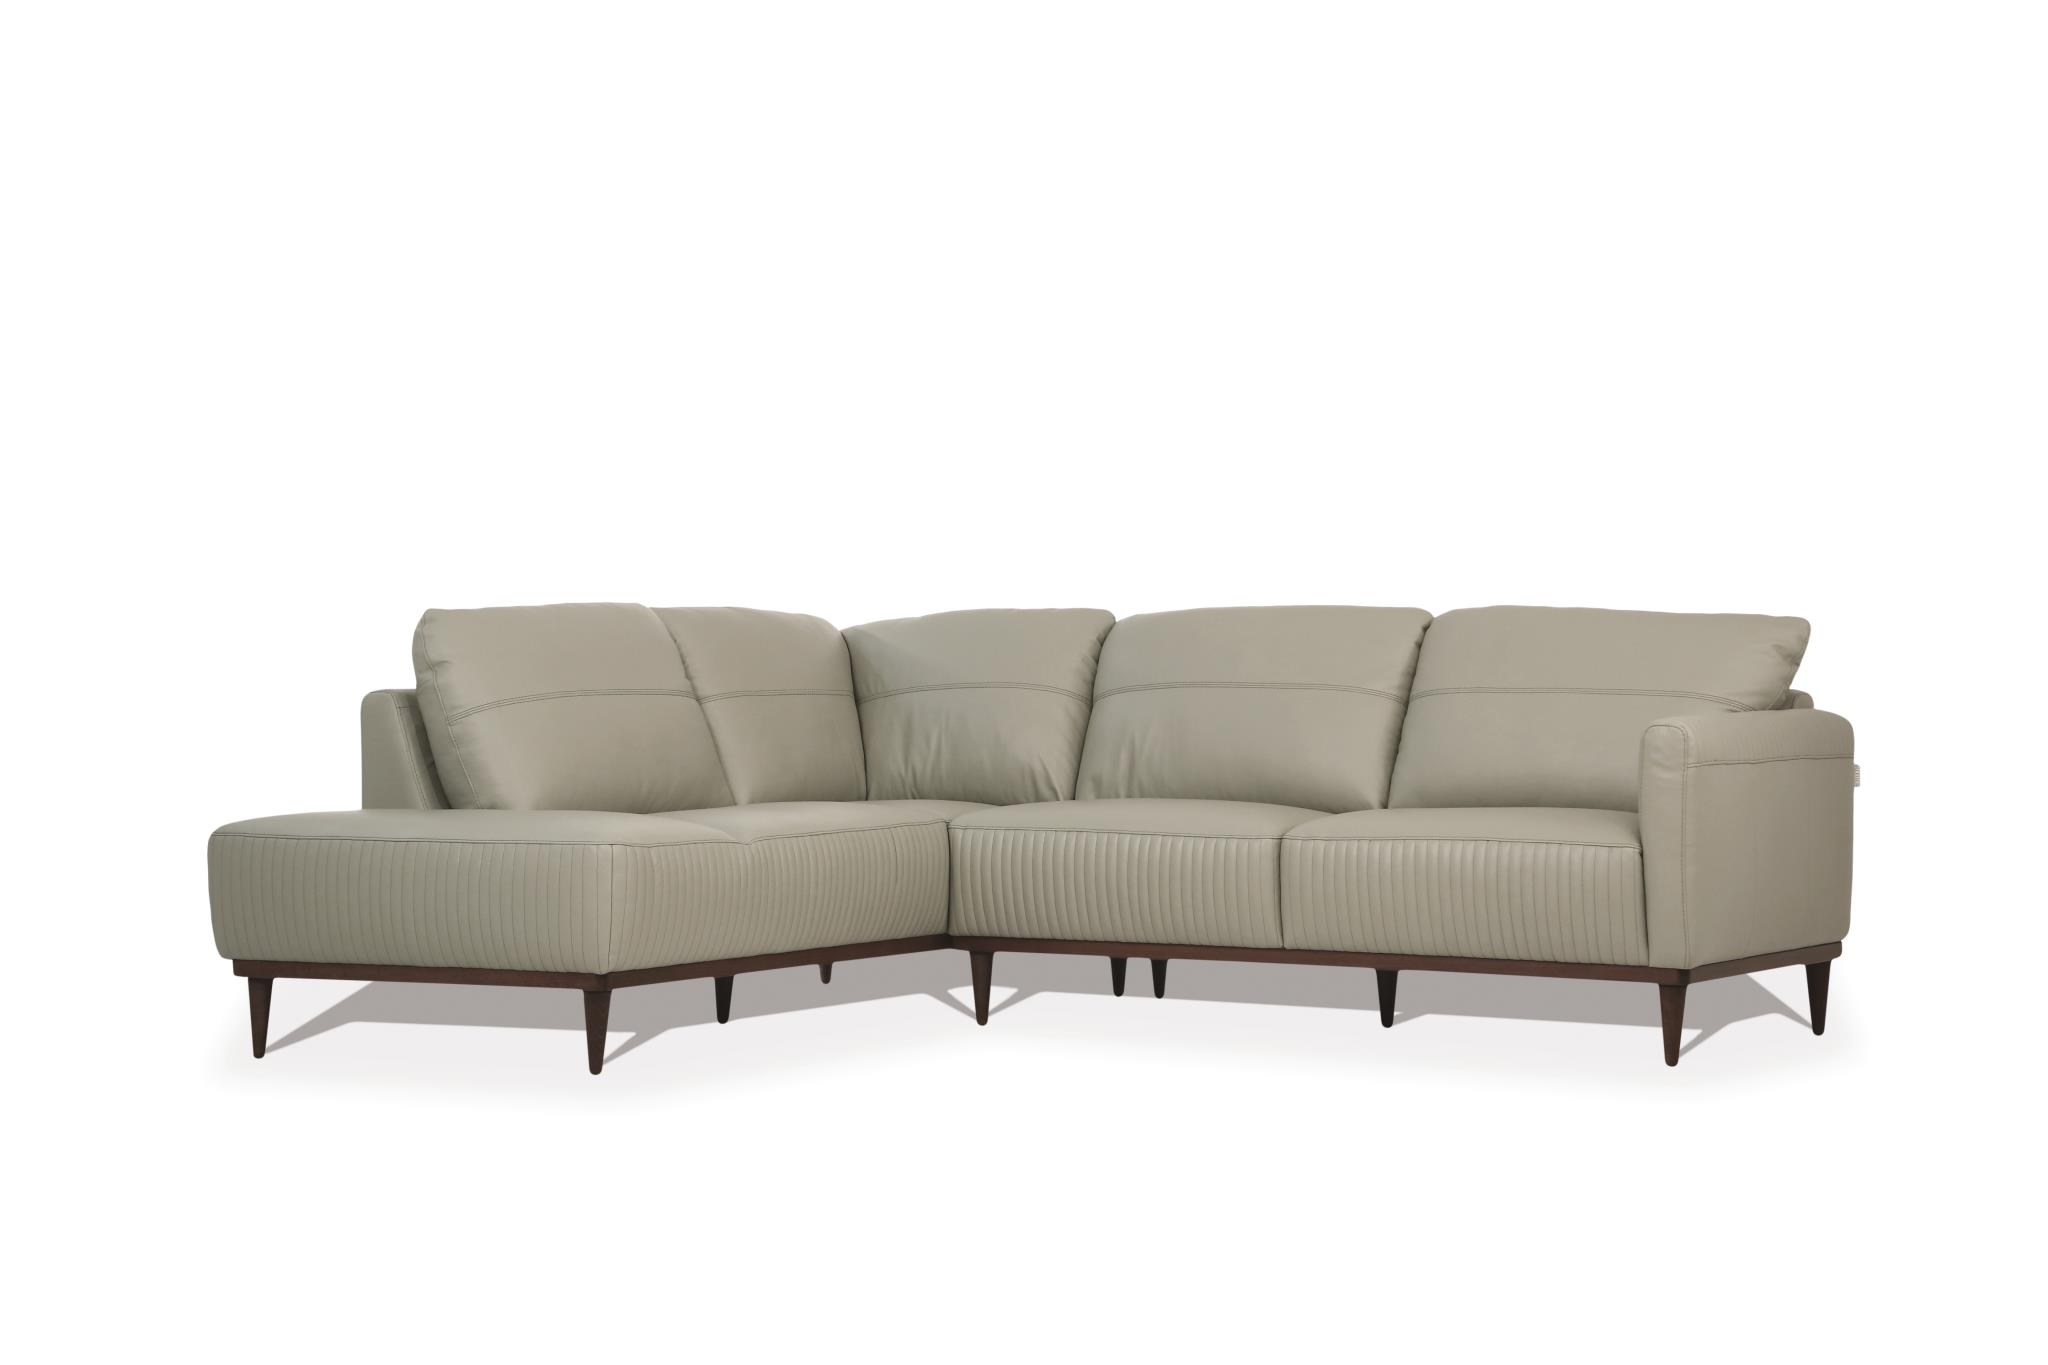 Airy Green Sectional Sofa w/ Left Facing Chaise Angle